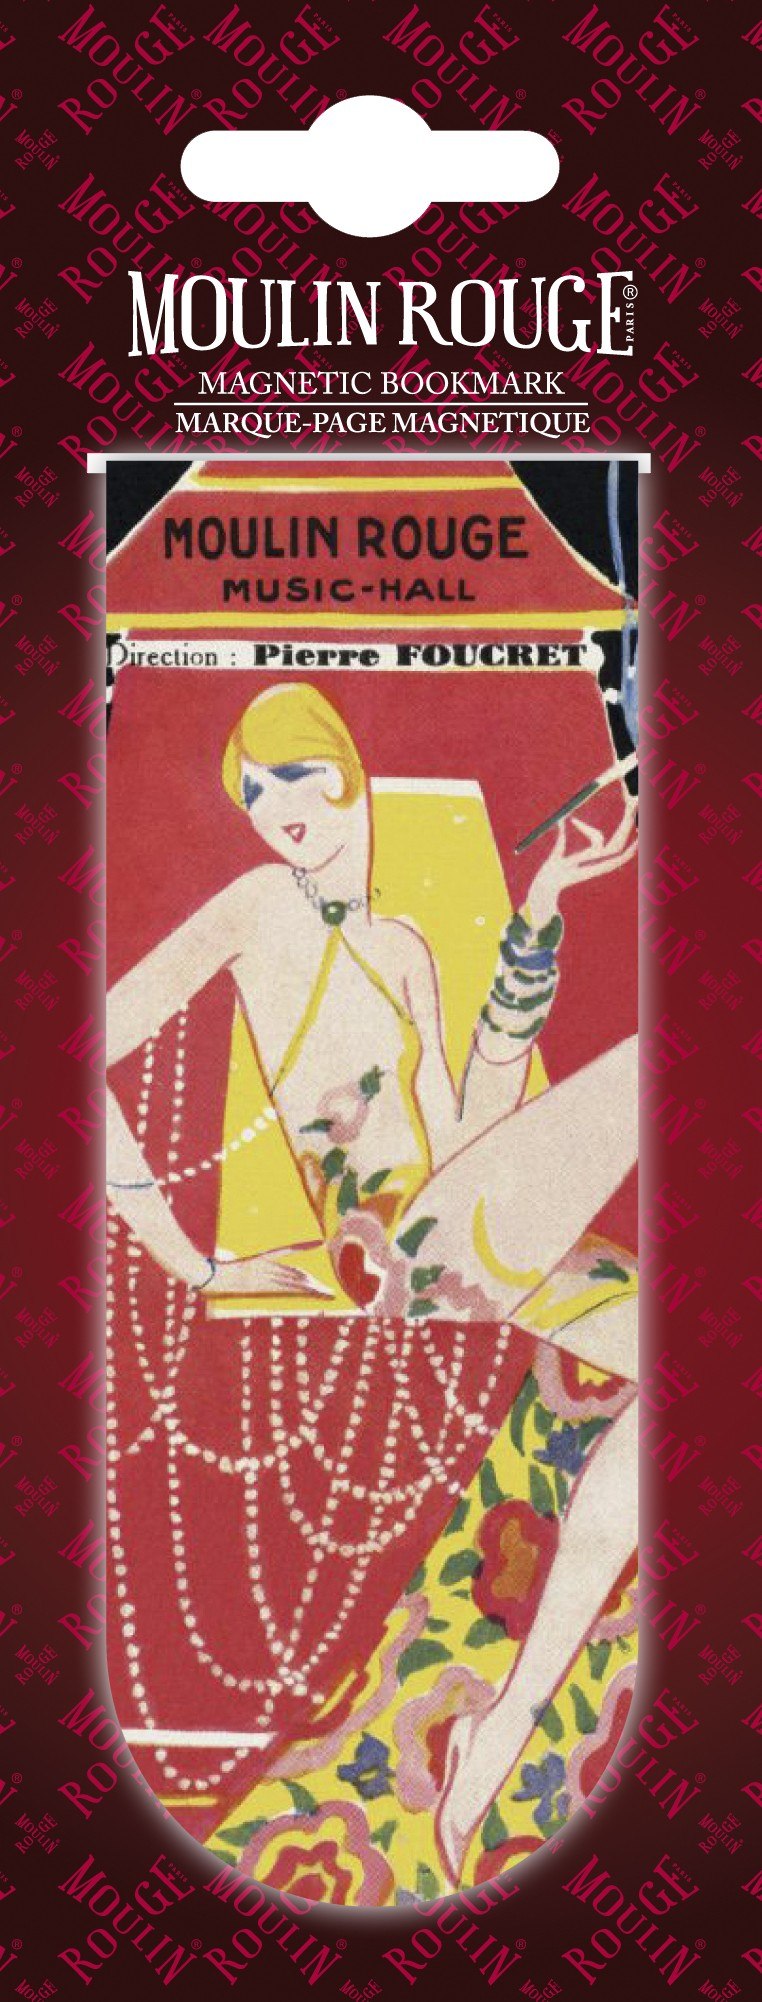 Marque-pages Mistinguett cigare